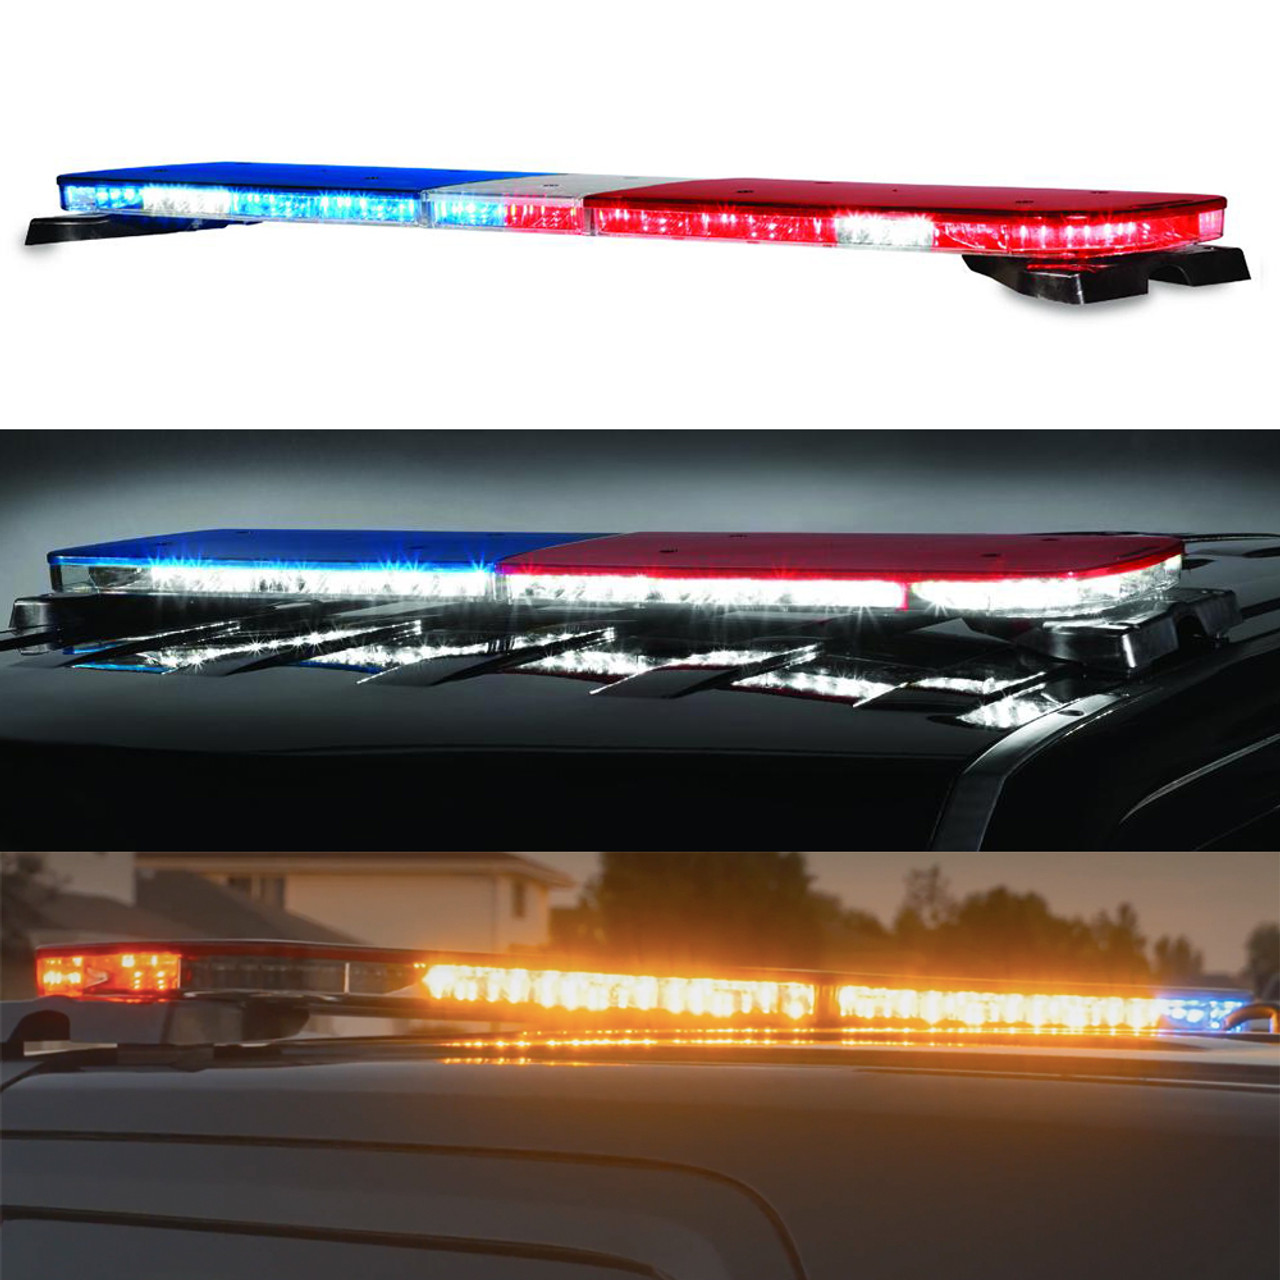 federal signal allegiant light bar 45 or 53 inch model dual color light bar [ 1000 x 1000 Pixel ]